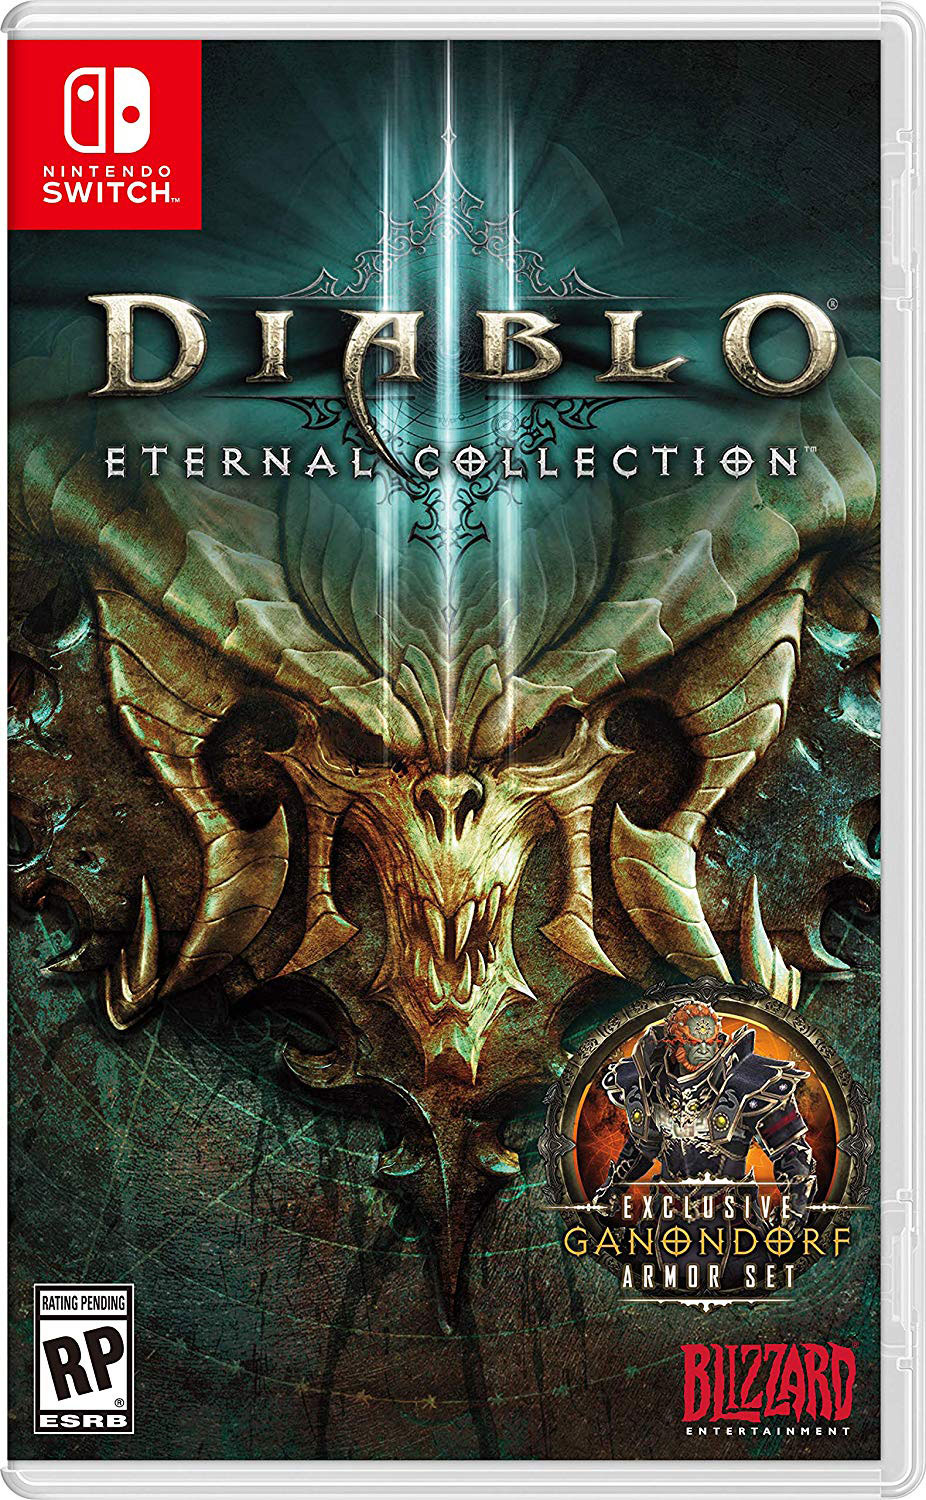 Diablo III for the Nintendo Switch